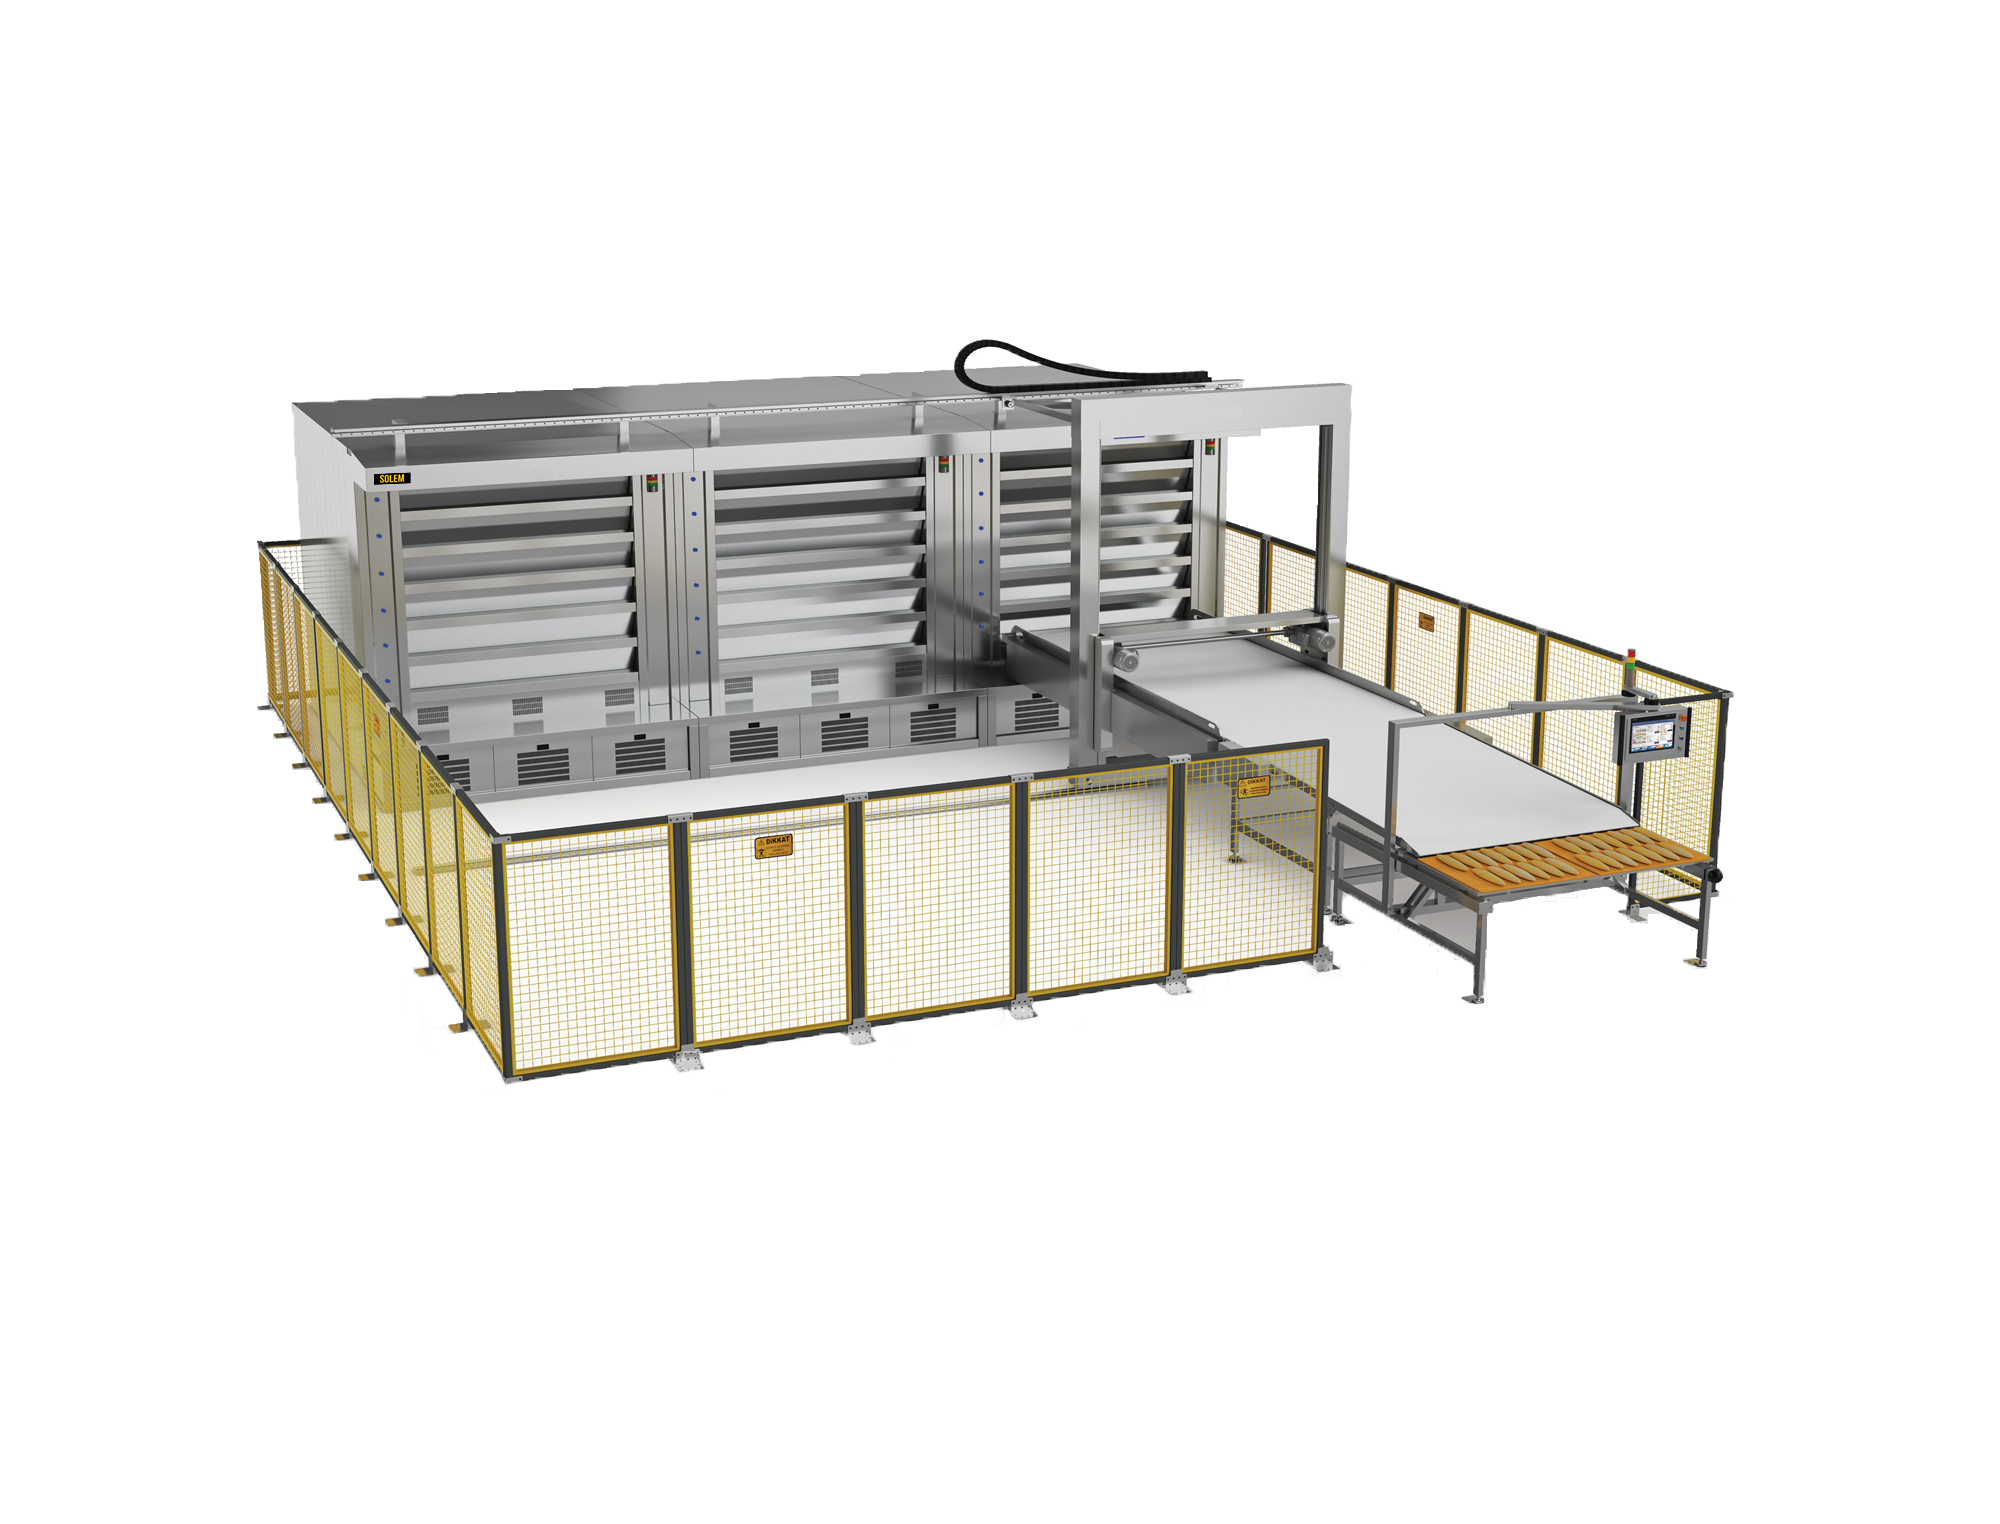 STEAM TUBE OVEN (AUTOMATIC LOADING UNIT)